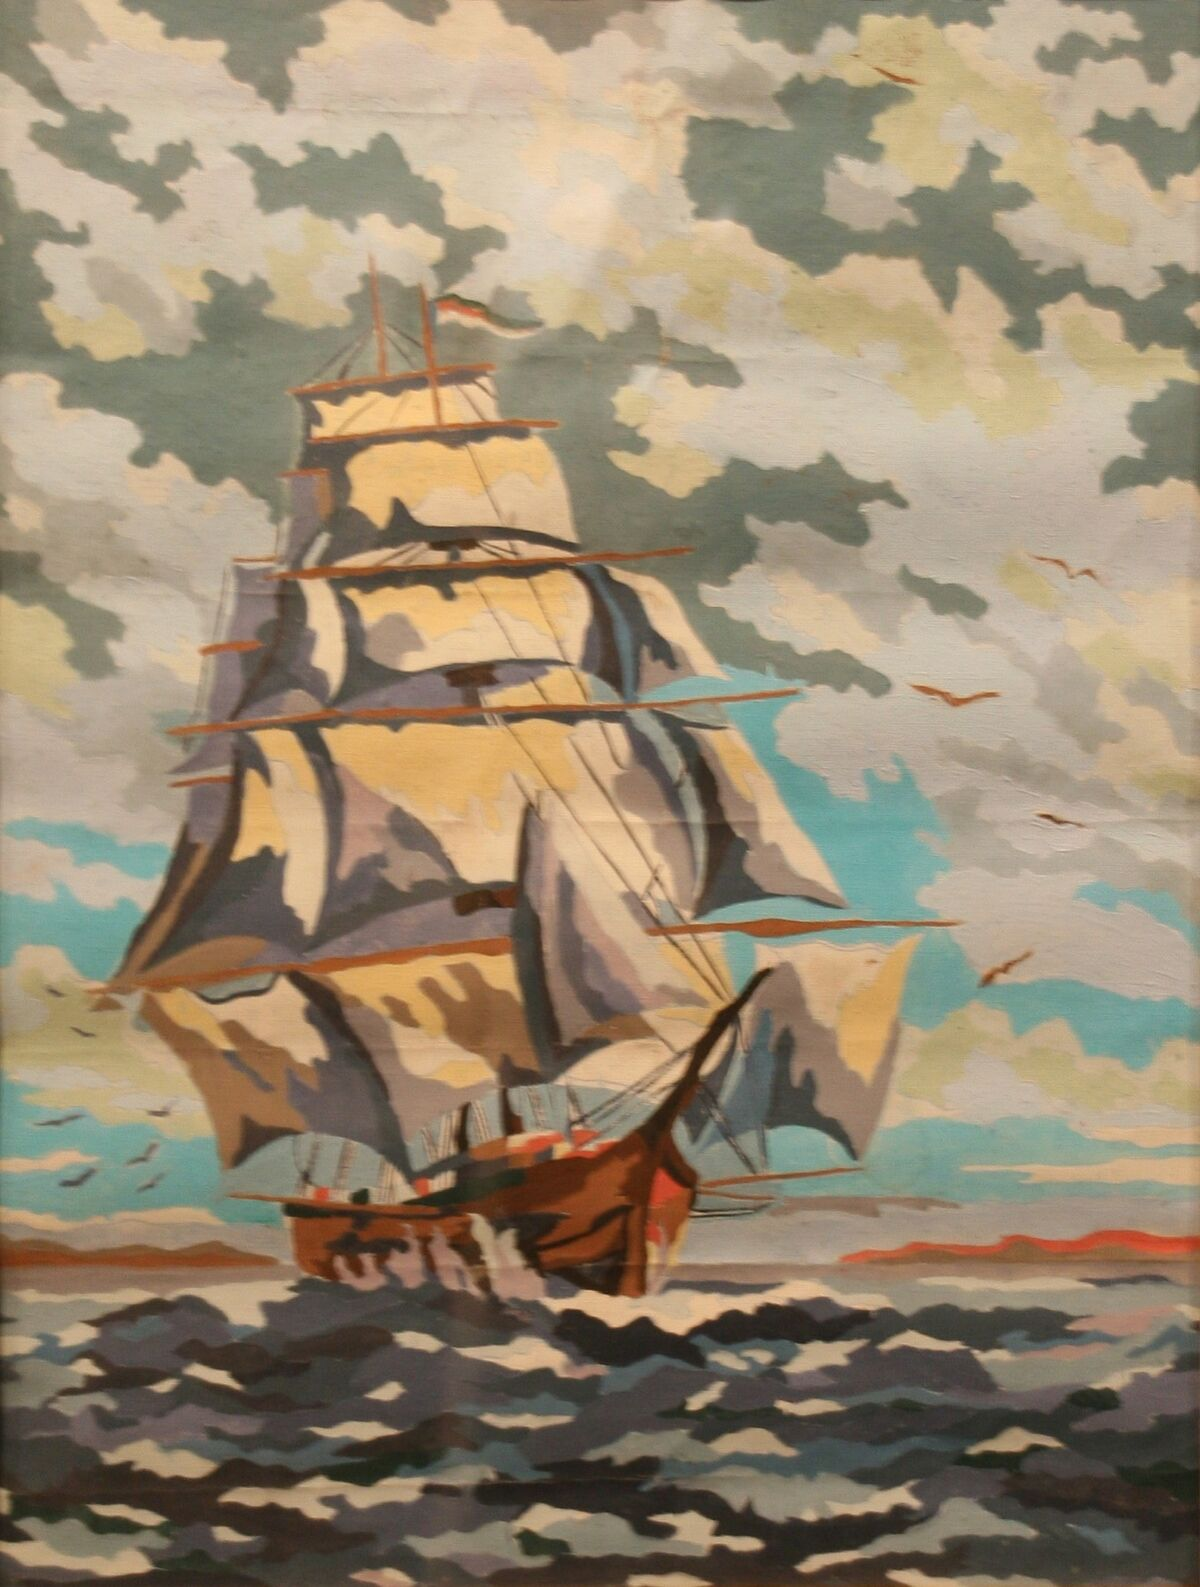 Dan Robbins' Clipper Ship executed by an unknown painter, 1952. Courtesy of 20 North Gallery.